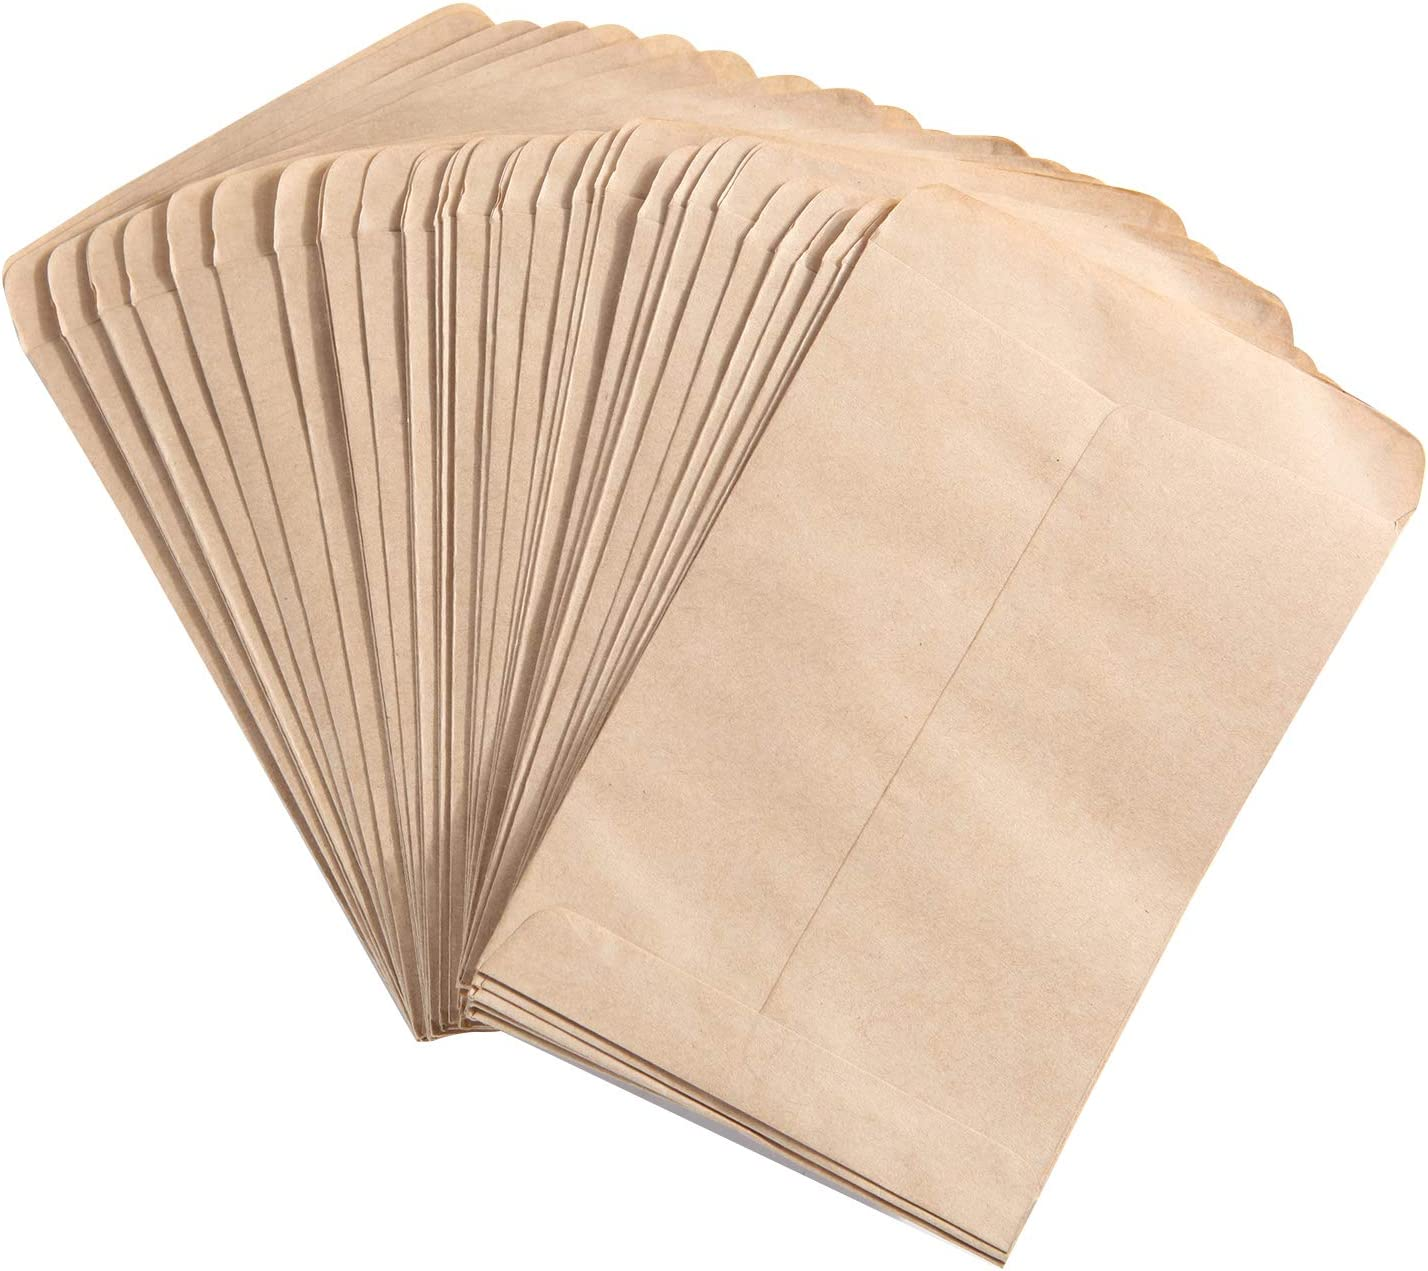 Senkary 100 Pieces Seed Packets Envelopes Empty Seed Bags Kraft Coin Envelopes for Party Favors, Wedding, Flowers (4.7 by 3.5 Inches)